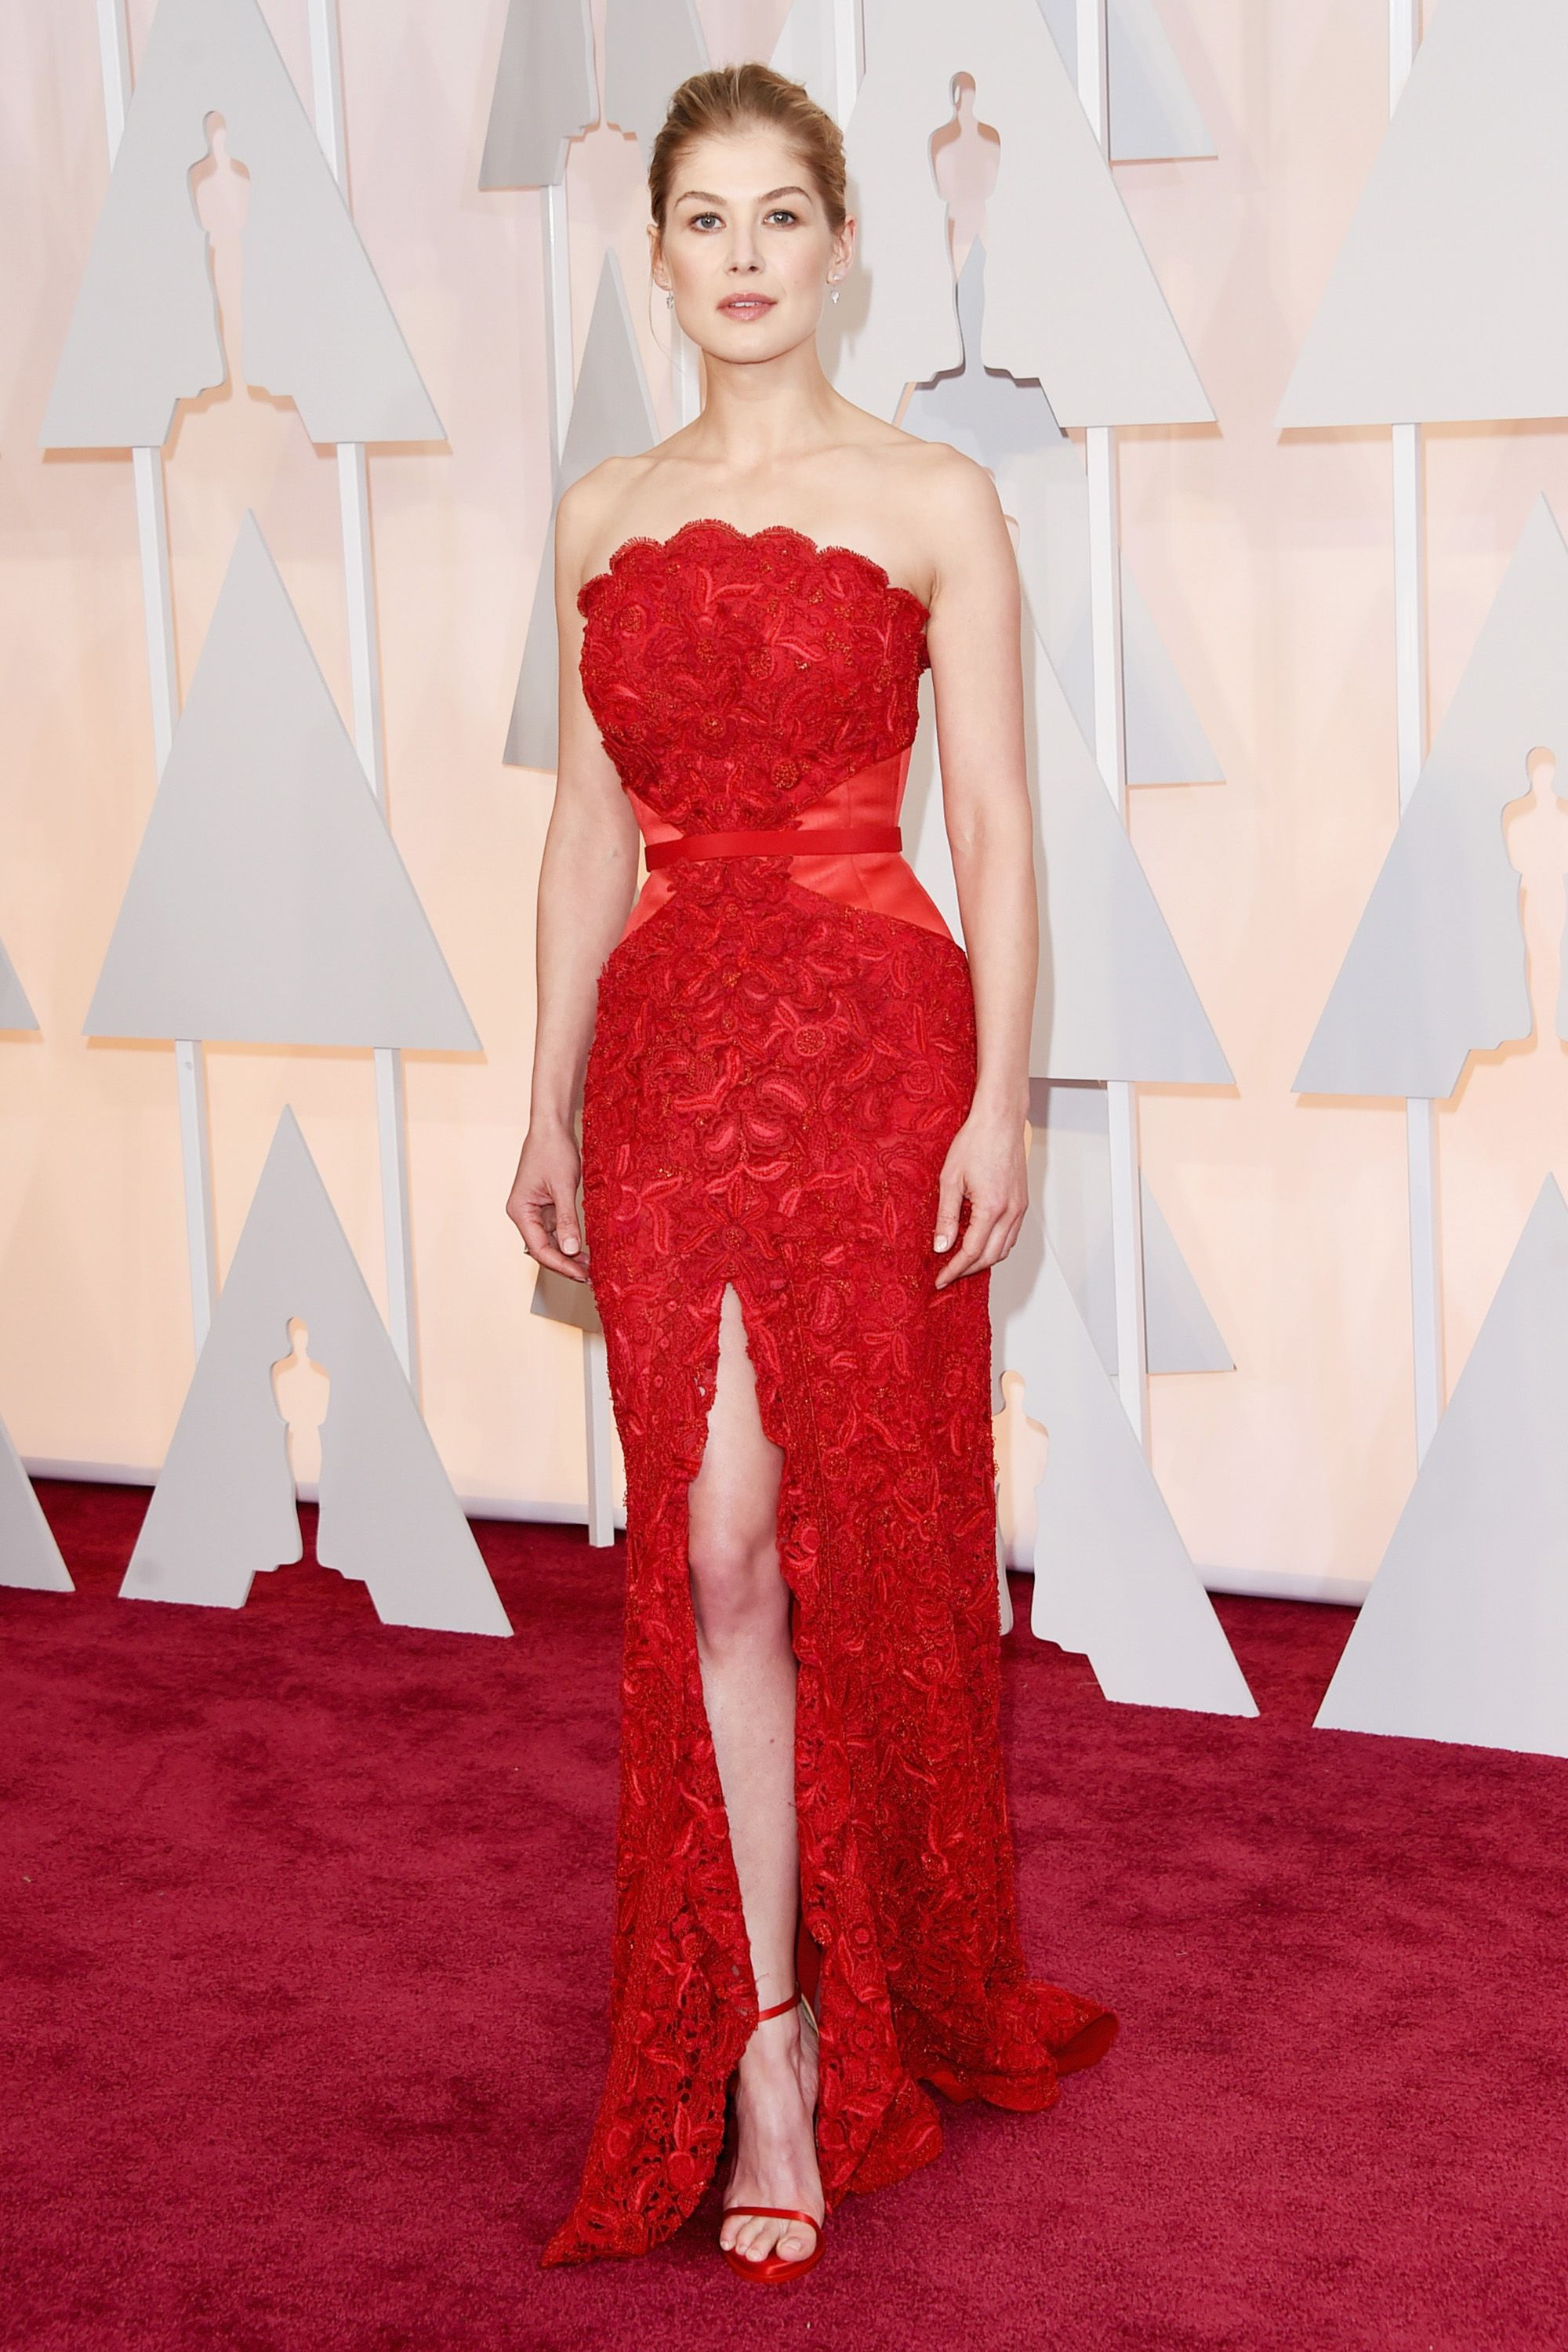 32514dd6bc2 Oscars Red Carpet 2015 - Pictures from 2015 Academy Awards Red Carpet